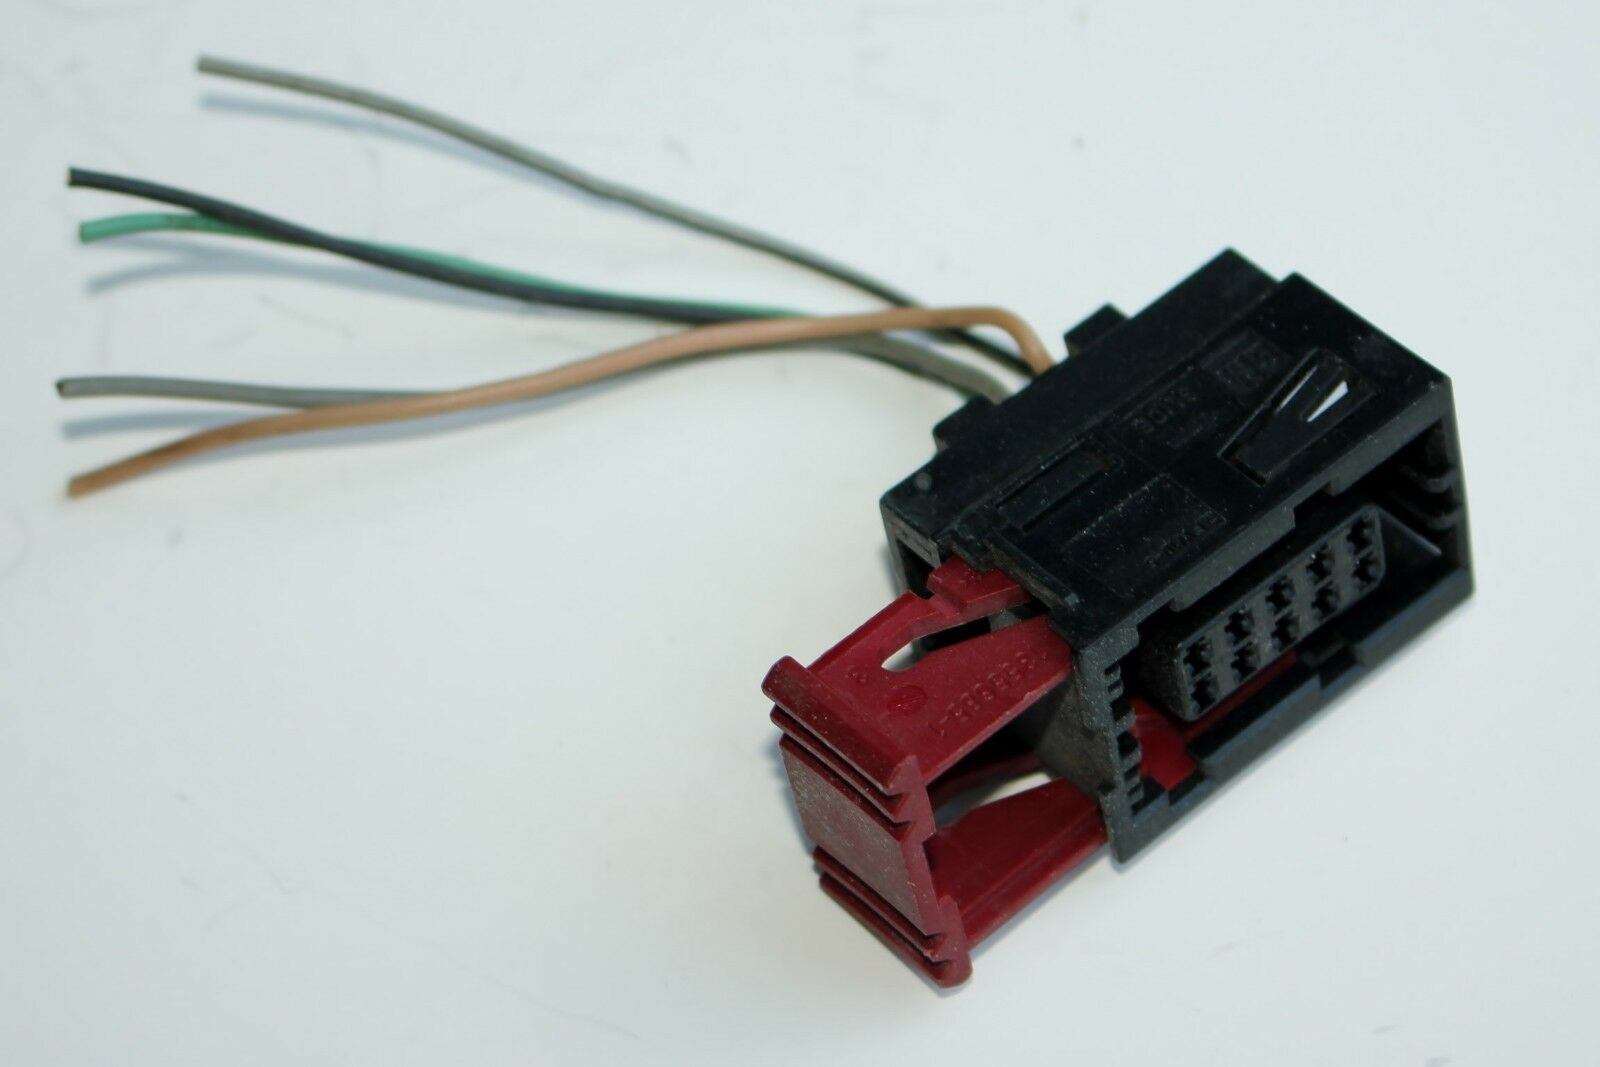 Used Pontiac Electrical Parts For Sale Wiring Connector G6 2005 2008 Driver Door Latch Actuator Electric Harness Plug Oem